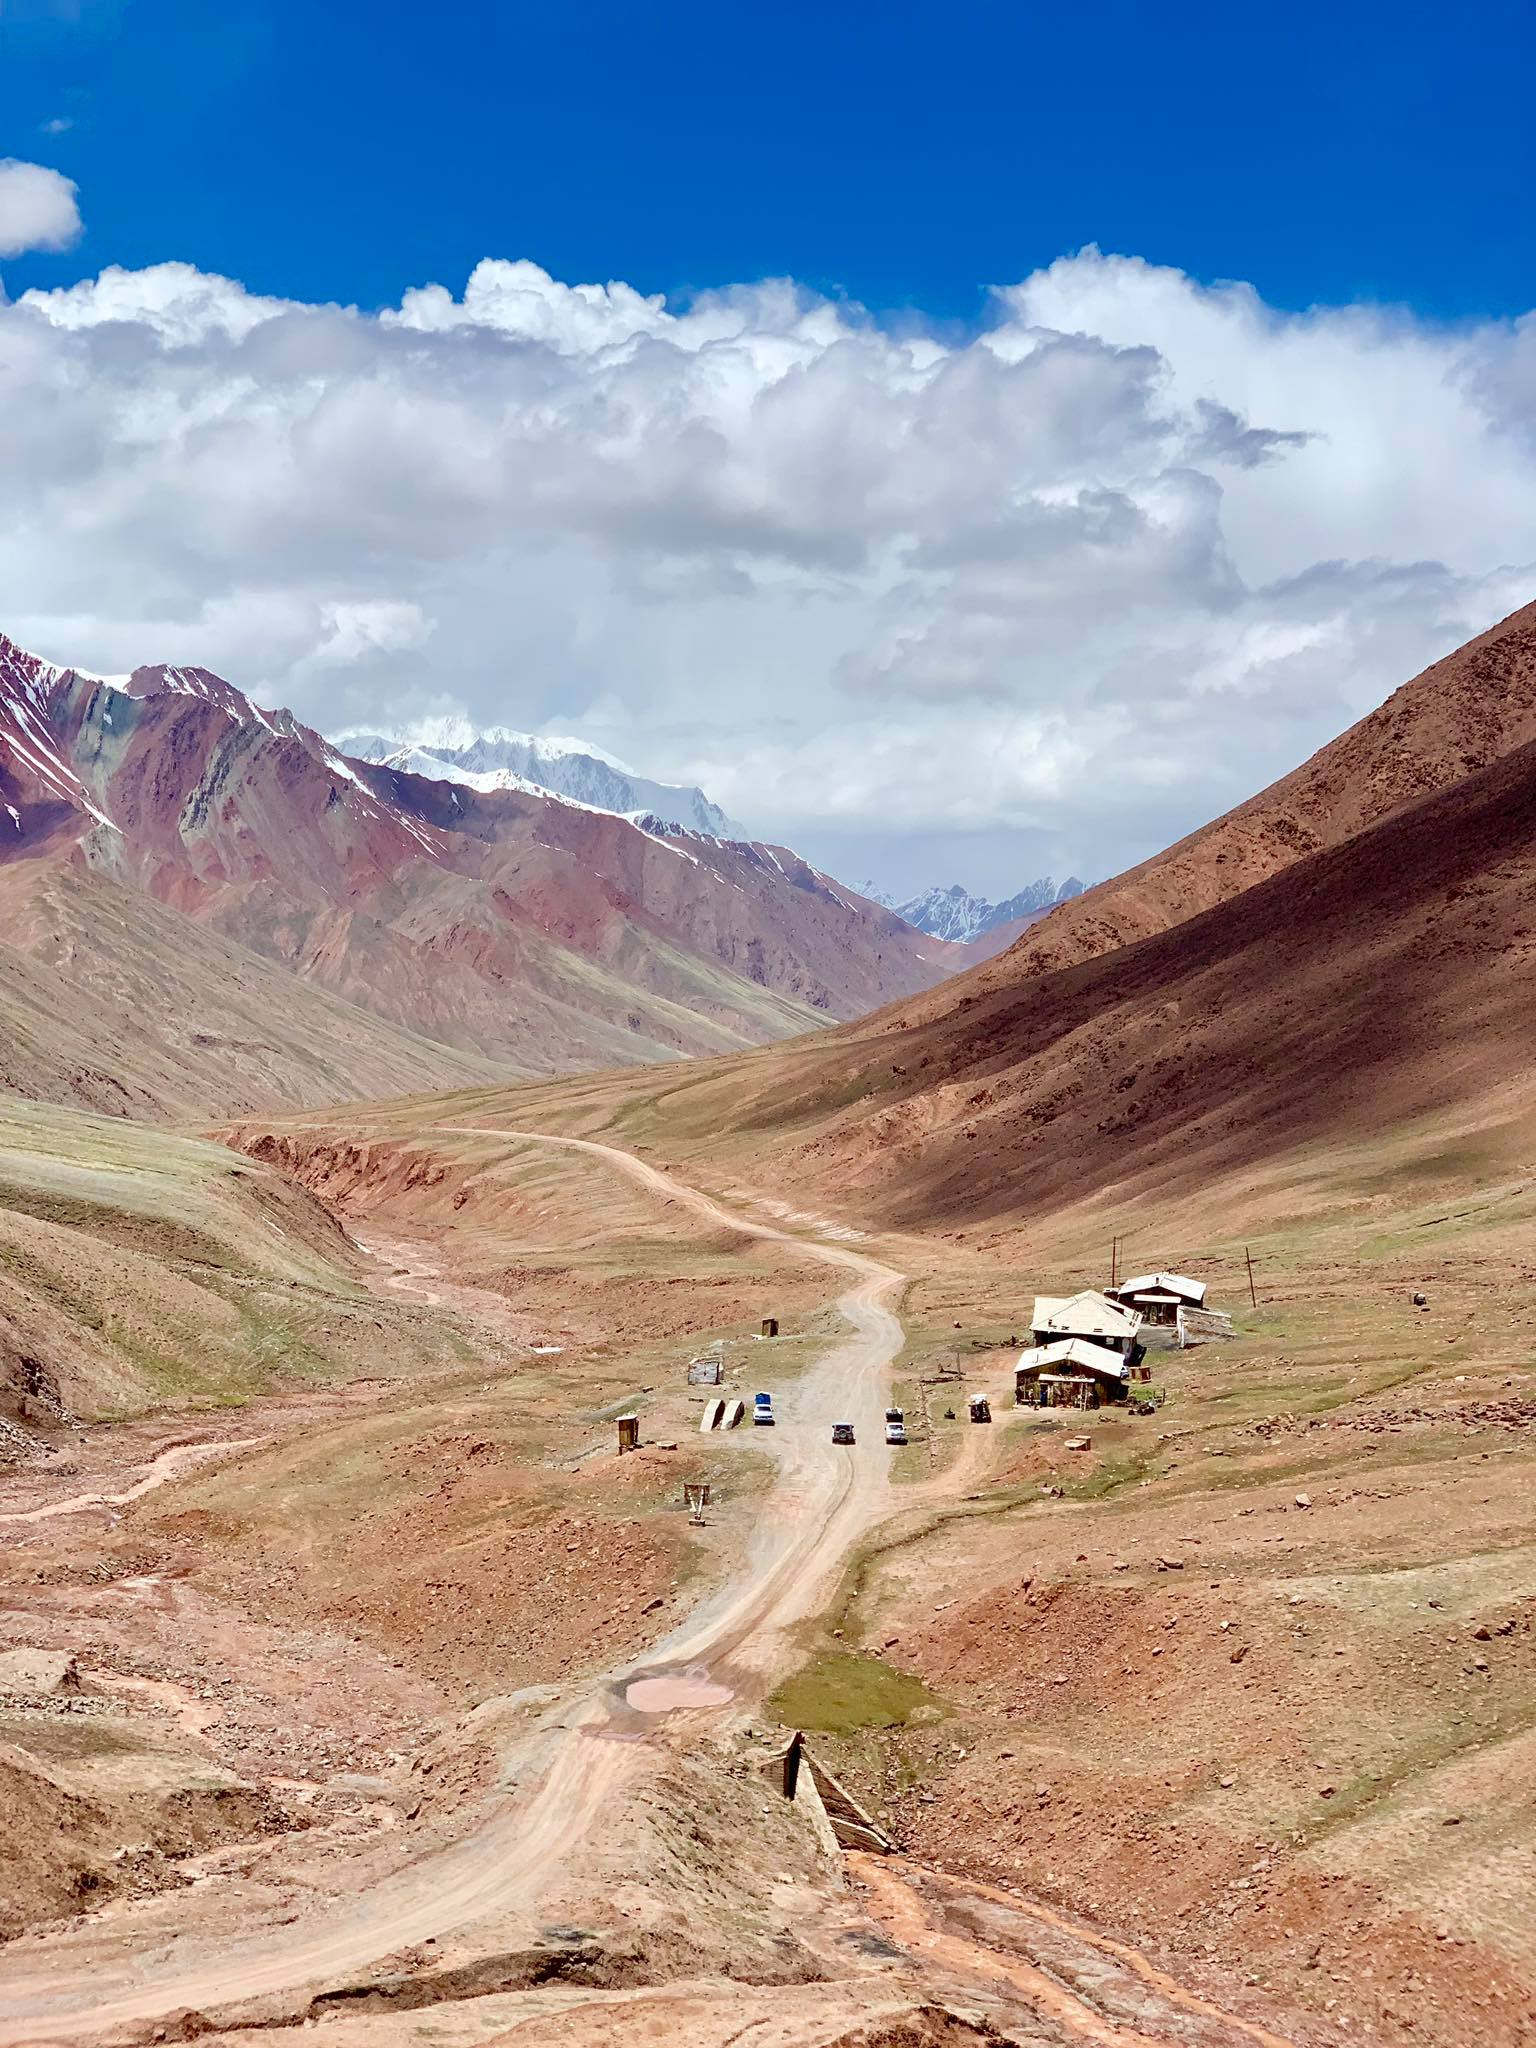 Kach Solo Travels in 2019 Hello from KYRGYZSTAN, my 128th country28.jpg